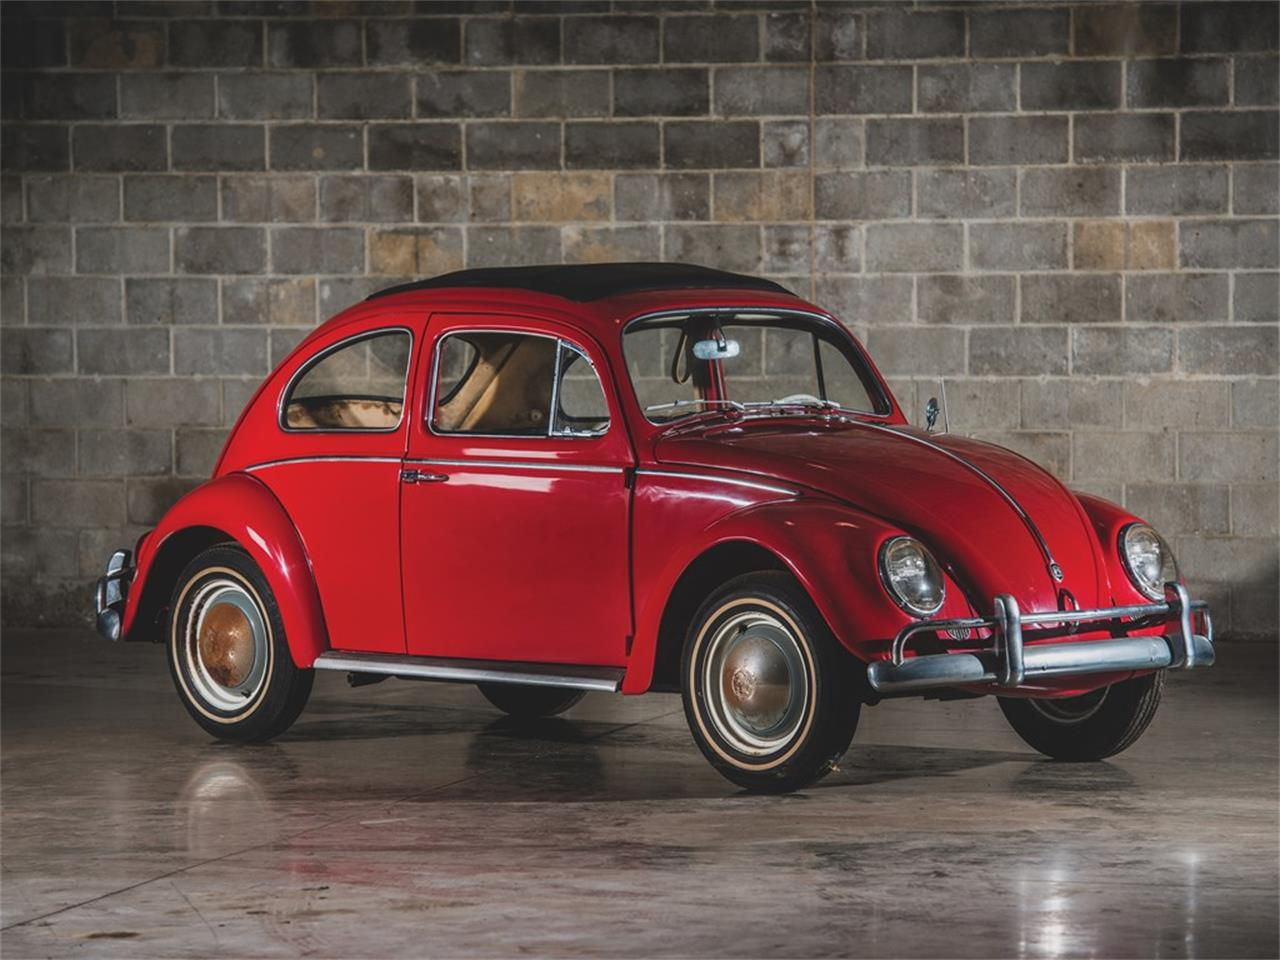 Large Picture of '62 Beetle Deluxe 'Sunroof' Sedan Auction Vehicle Offered by RM Sotheby's - PMN5